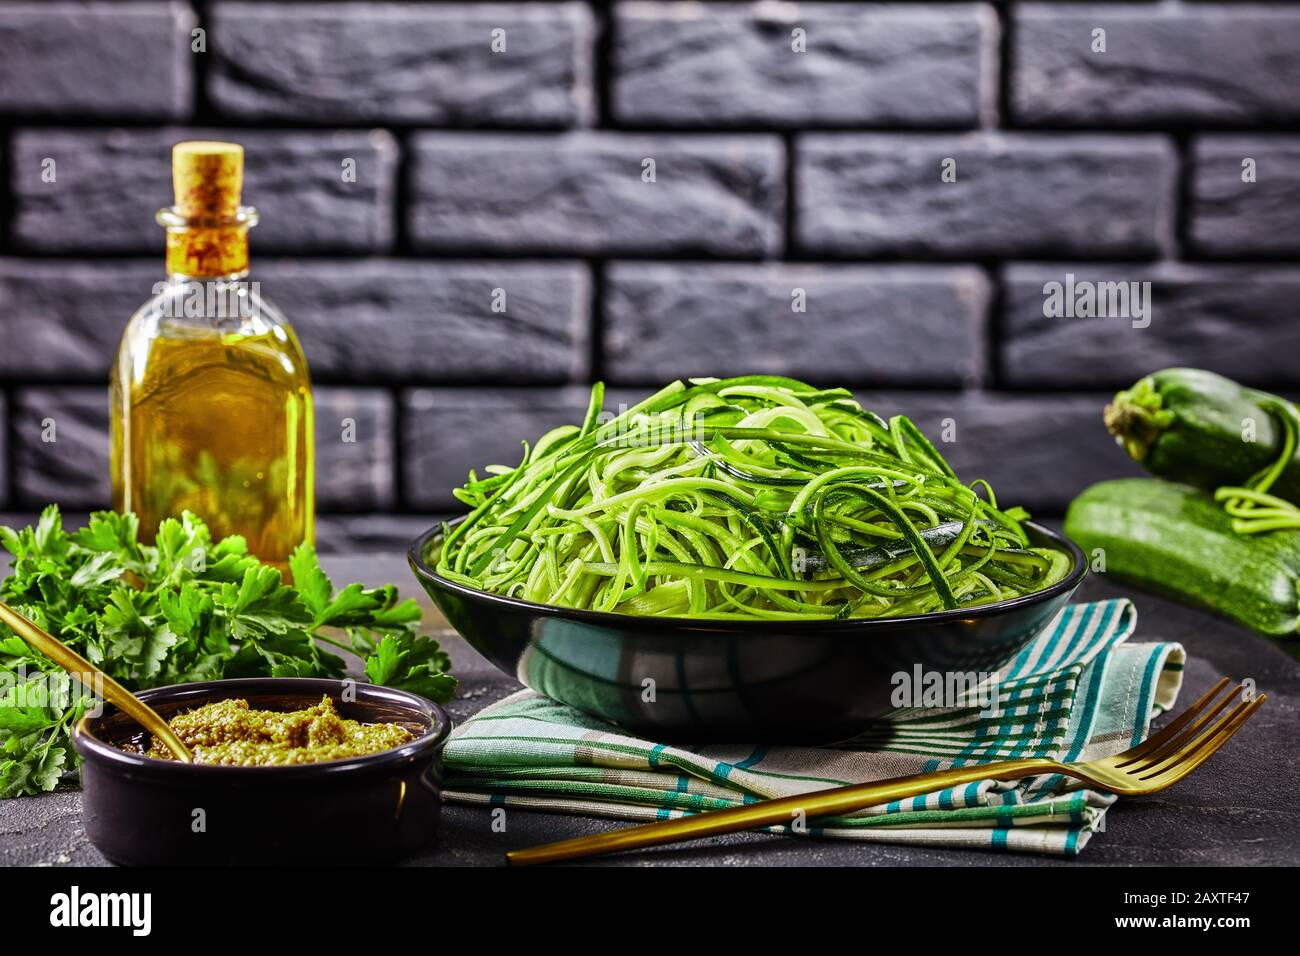 spiralized Zucchini spaghetti, zoodles in a black bowl on a grey concrete table with sauce pesto and ingredients with a brick wall at the background, Stock Photo